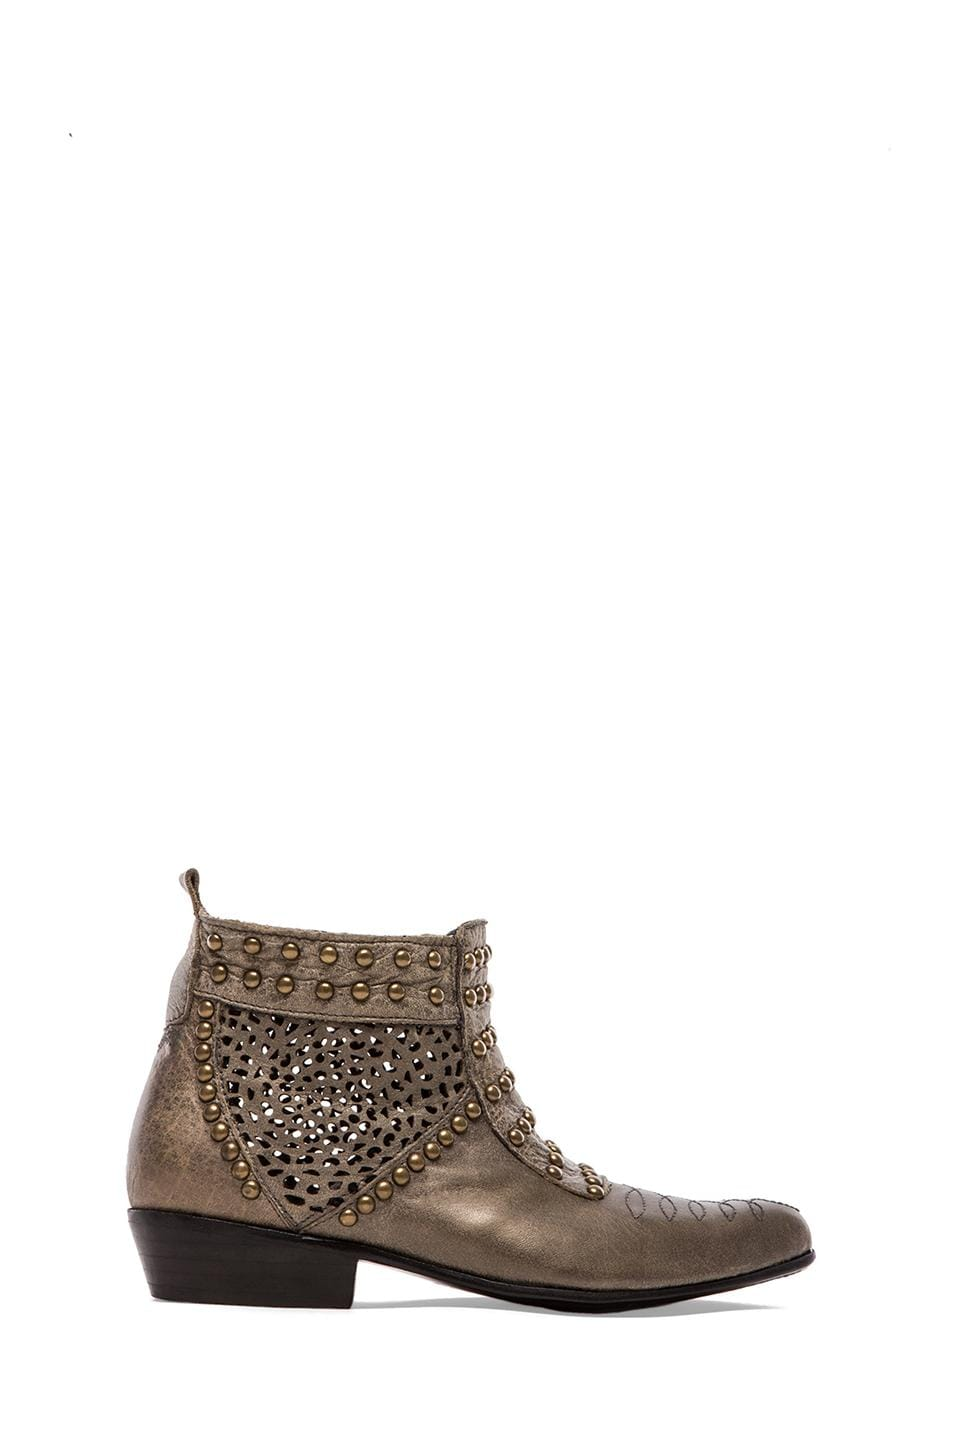 ANINE BING Studded Boots in Grey